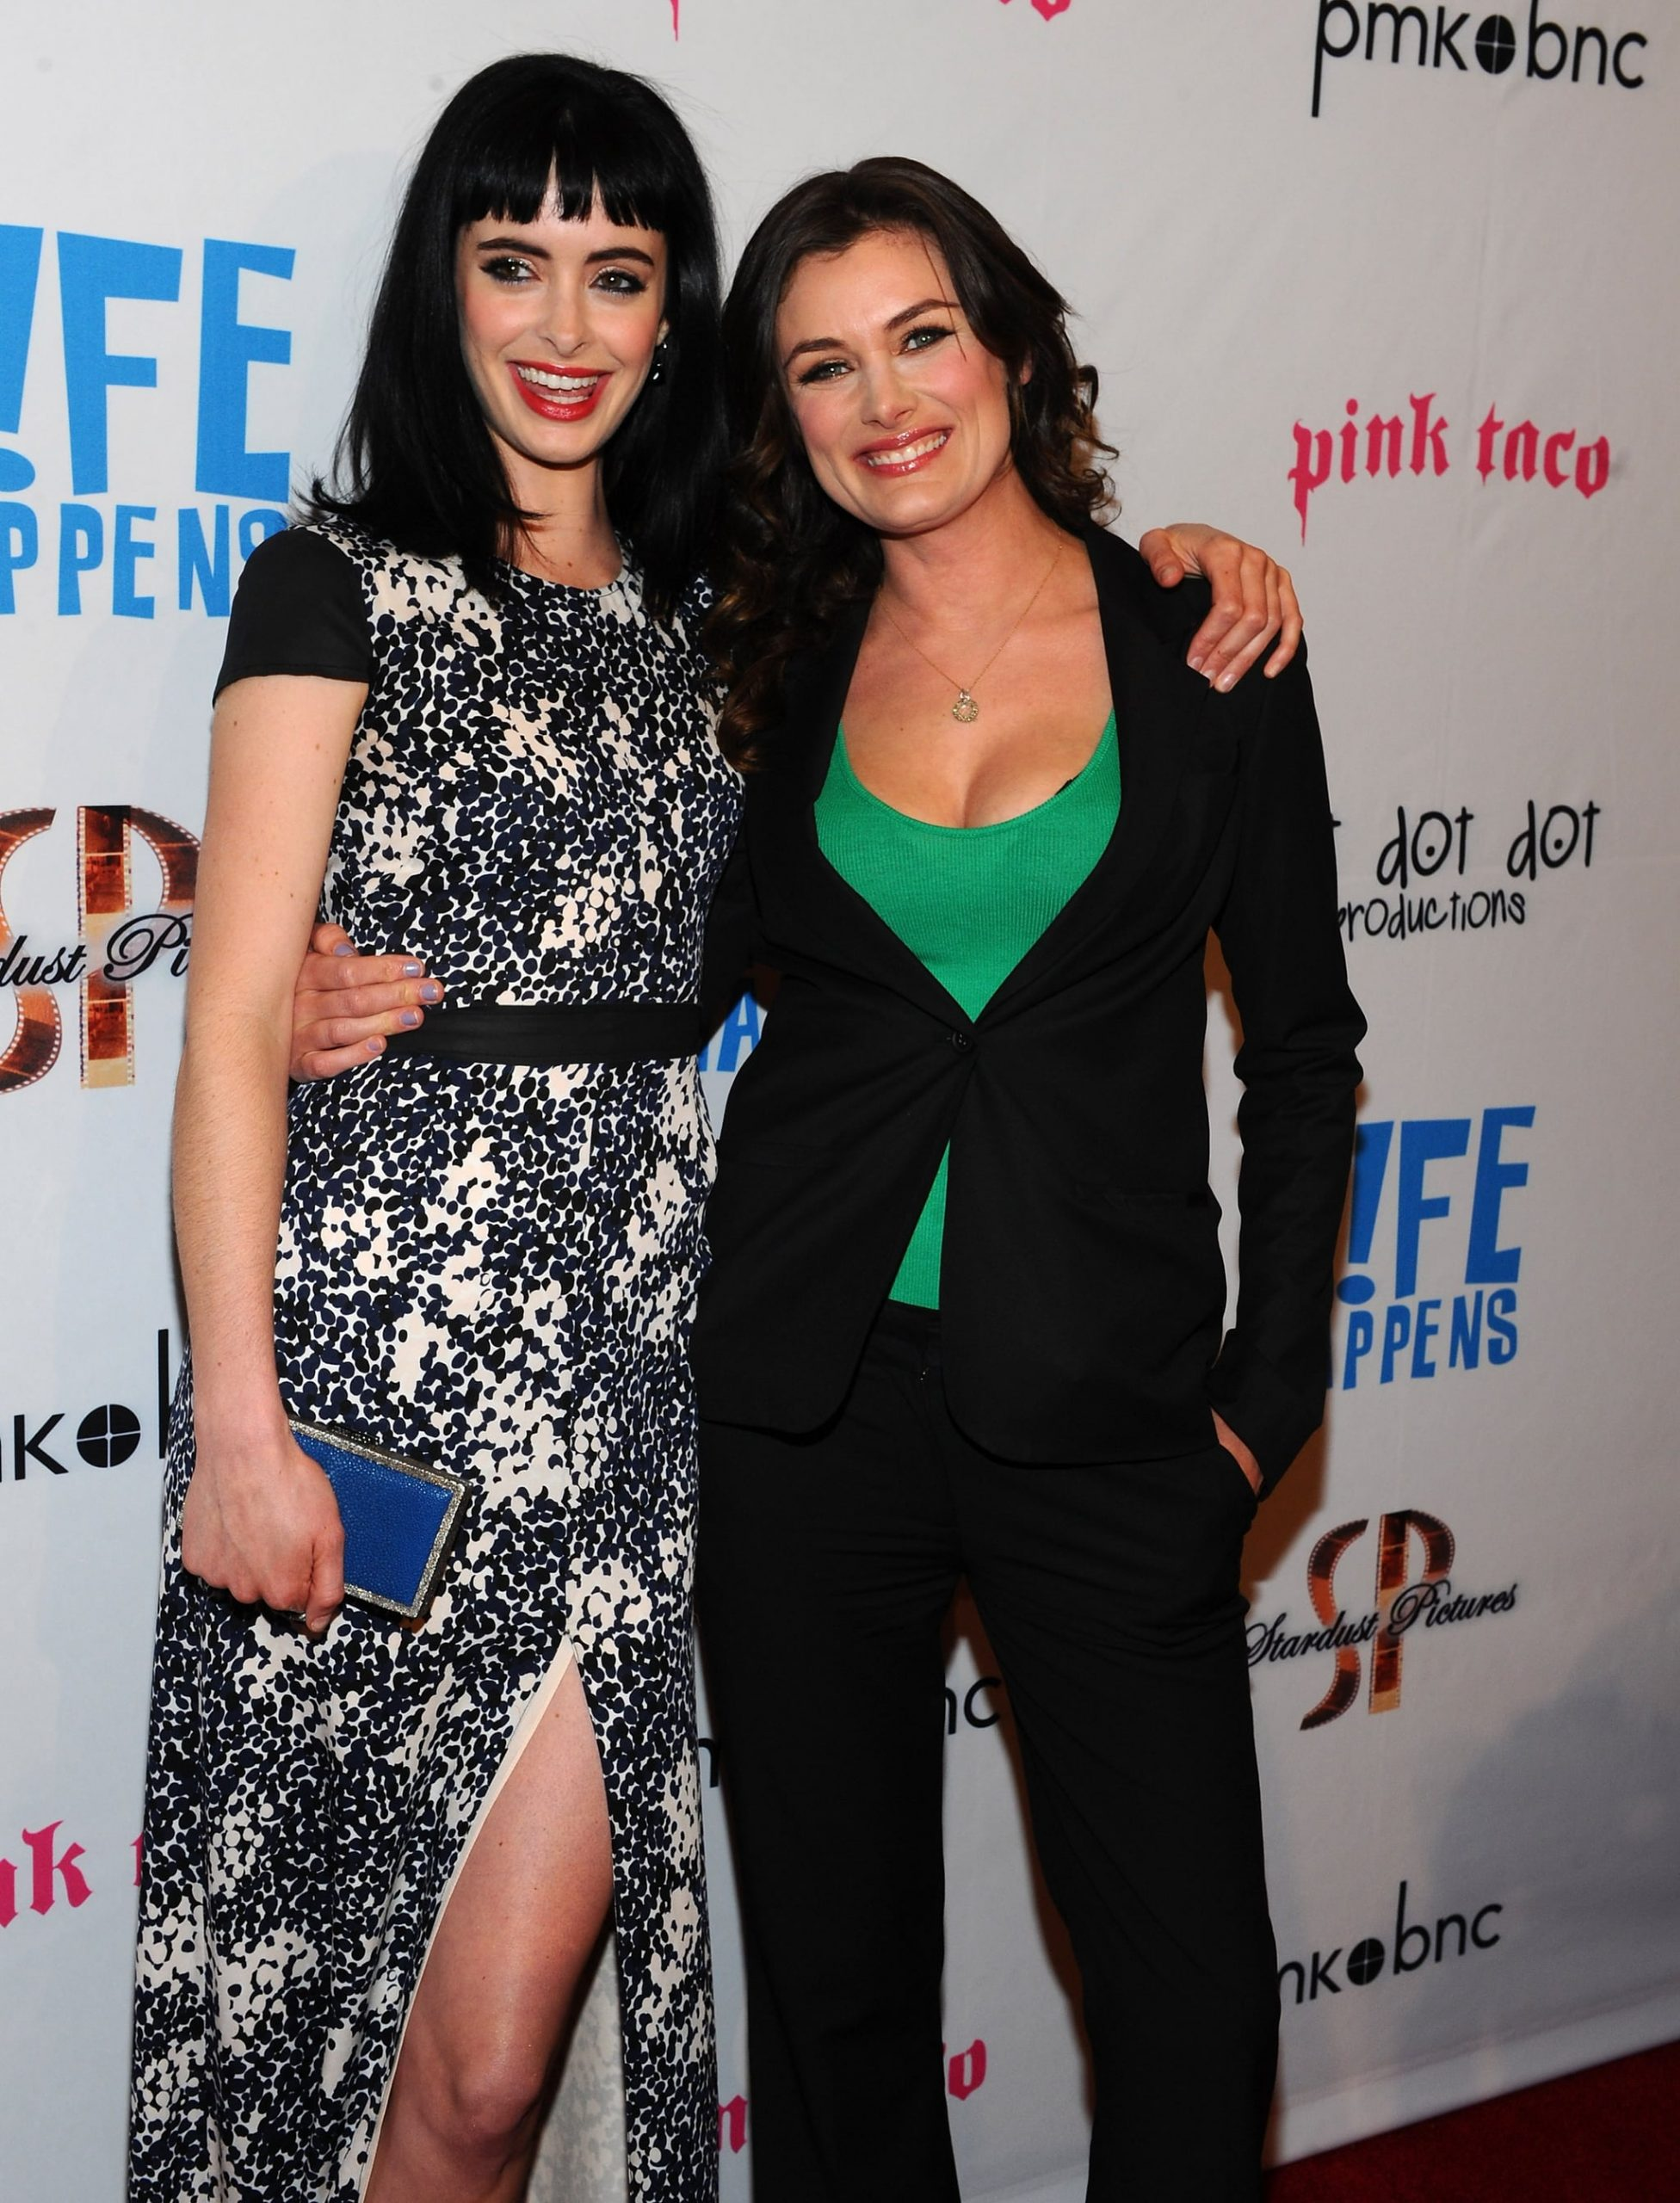 Kat Coiro and Krsyten Ritter at the Life Happens premiere in Century City